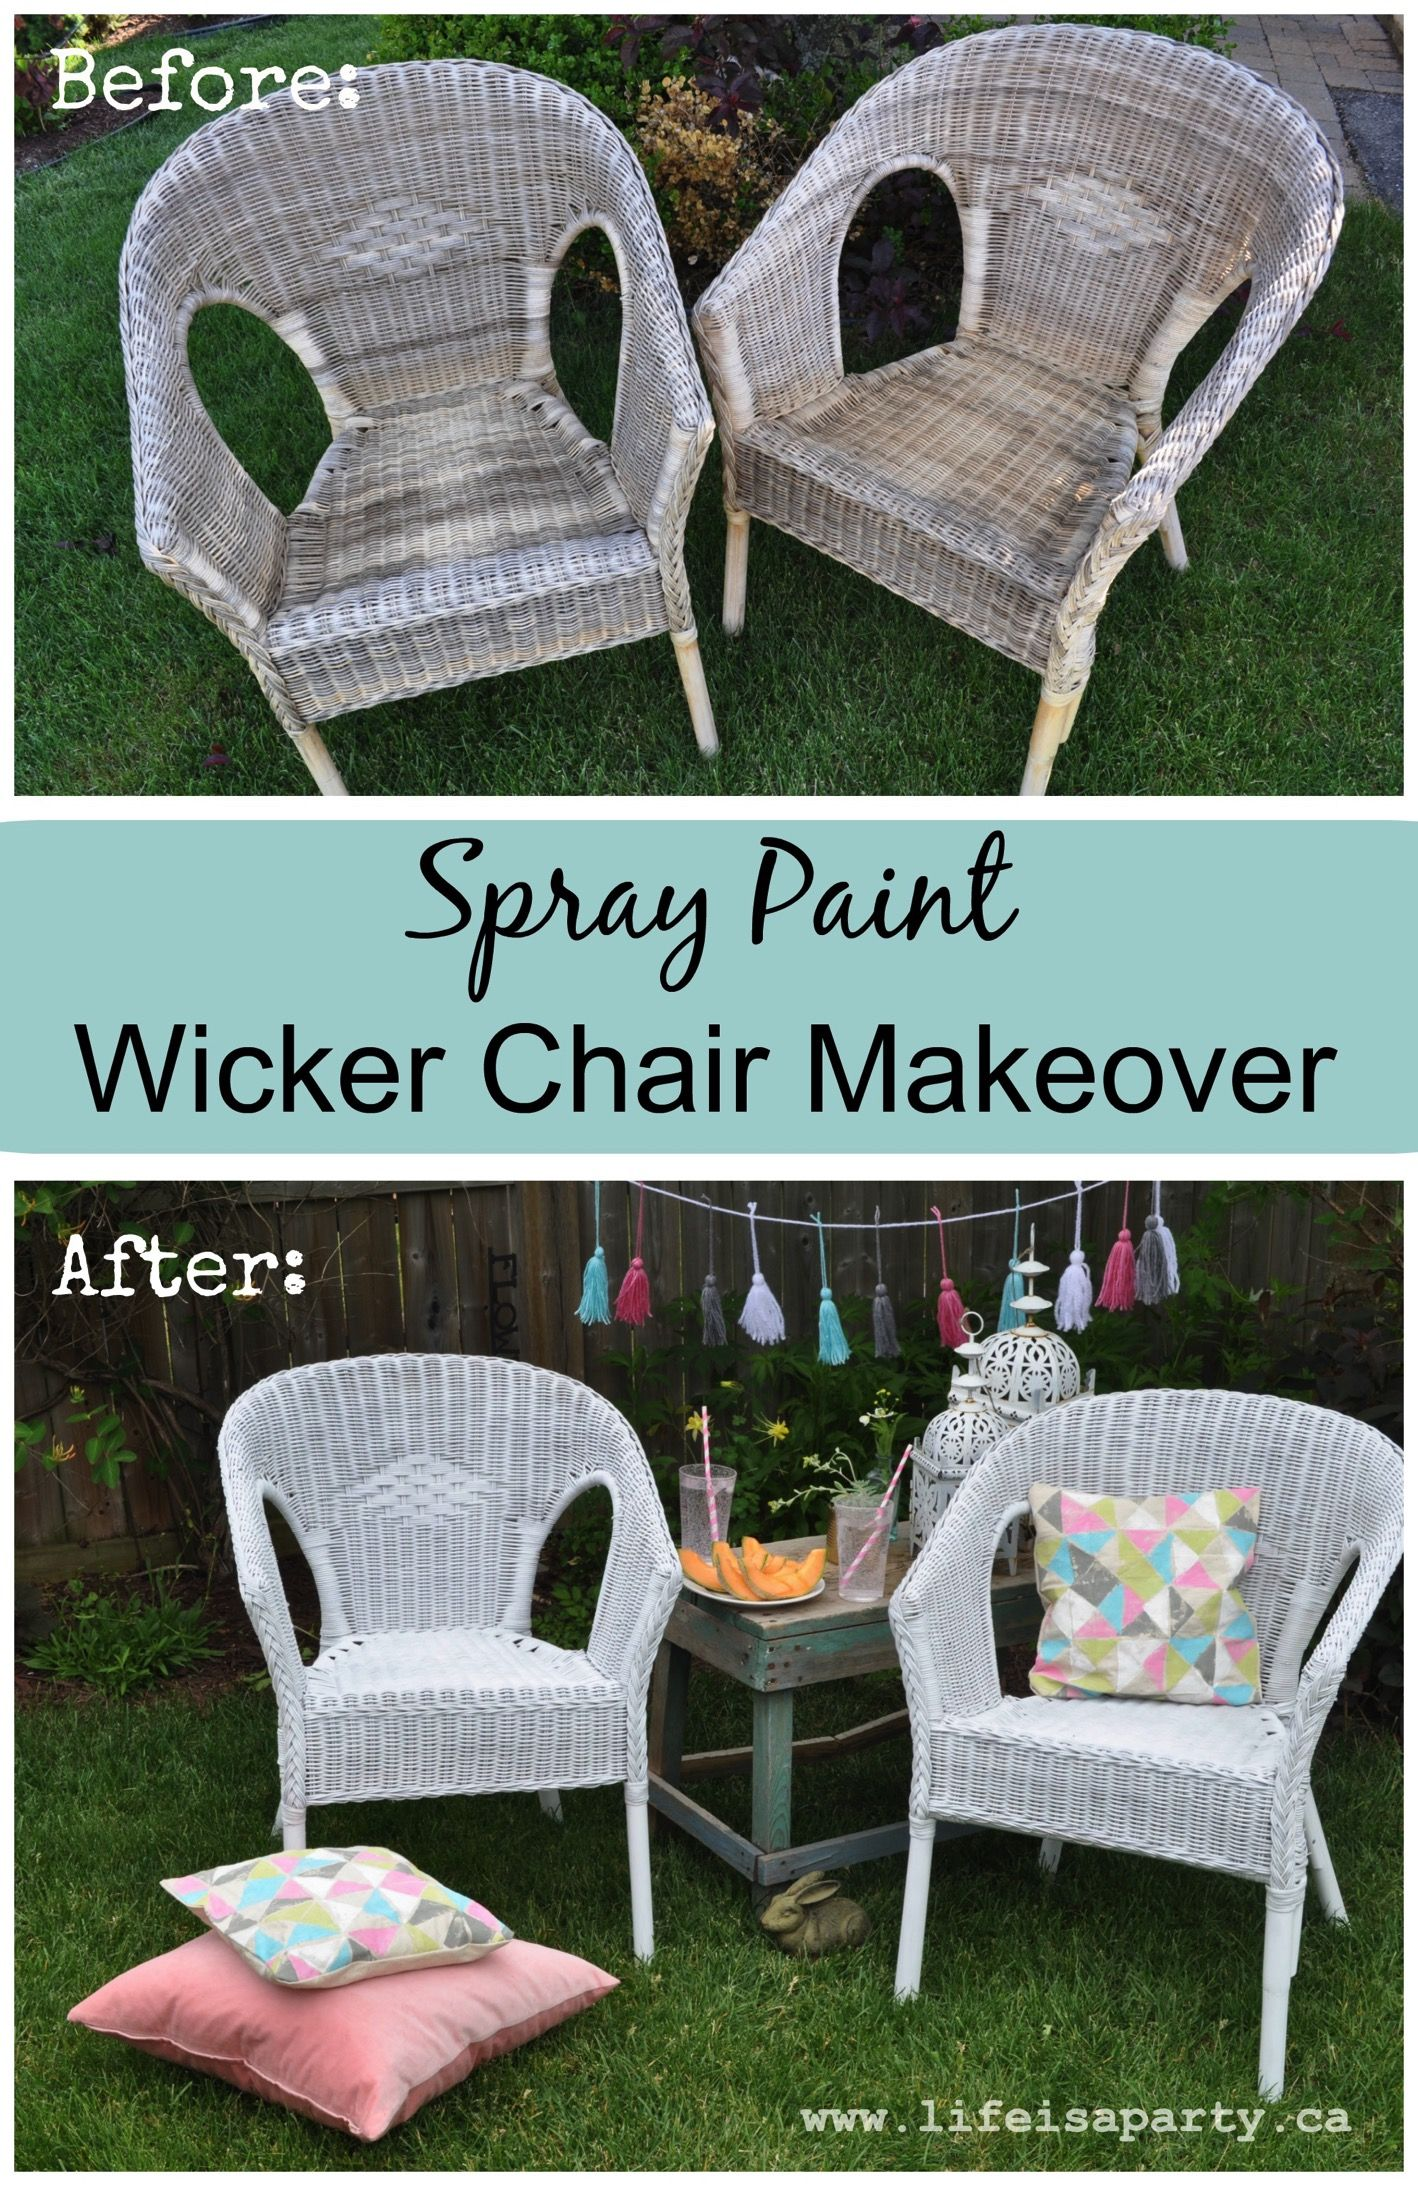 Merveilleux DIY Spray Paint Wicker Chair Makeover: Easy How To Spray Paint Wicker.Great  Tutorial Ad Instructions. Beautiful Pictures And Great Furniture Upcycle.